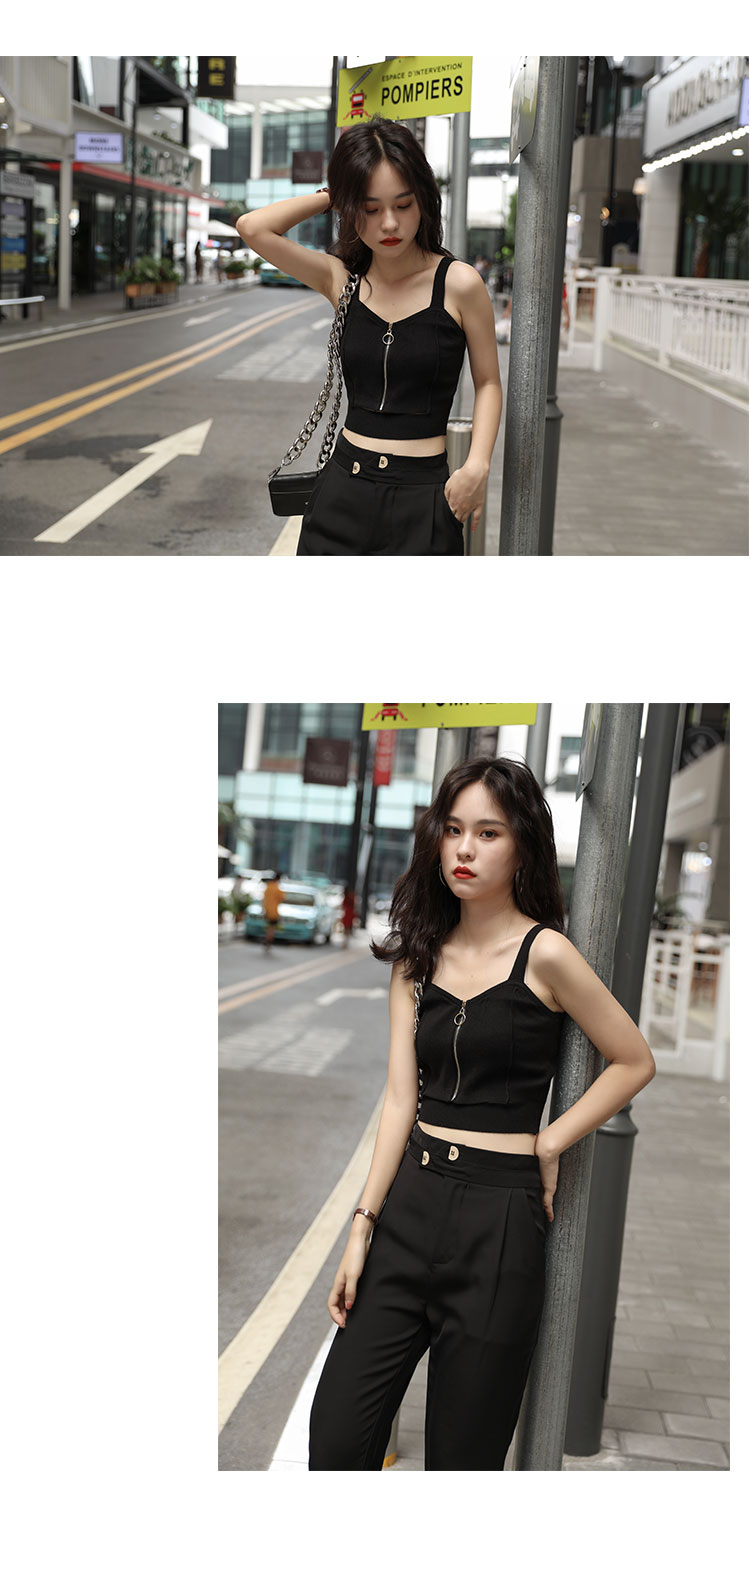 H47403da6f0744893b77a8e585dc35c36F - HELIAR Tops Women Crop Top Club Sexy Zipper Knitting Camisole With Hole Female Tank Tops Ladies Sleeveless Solid Strap Top Women